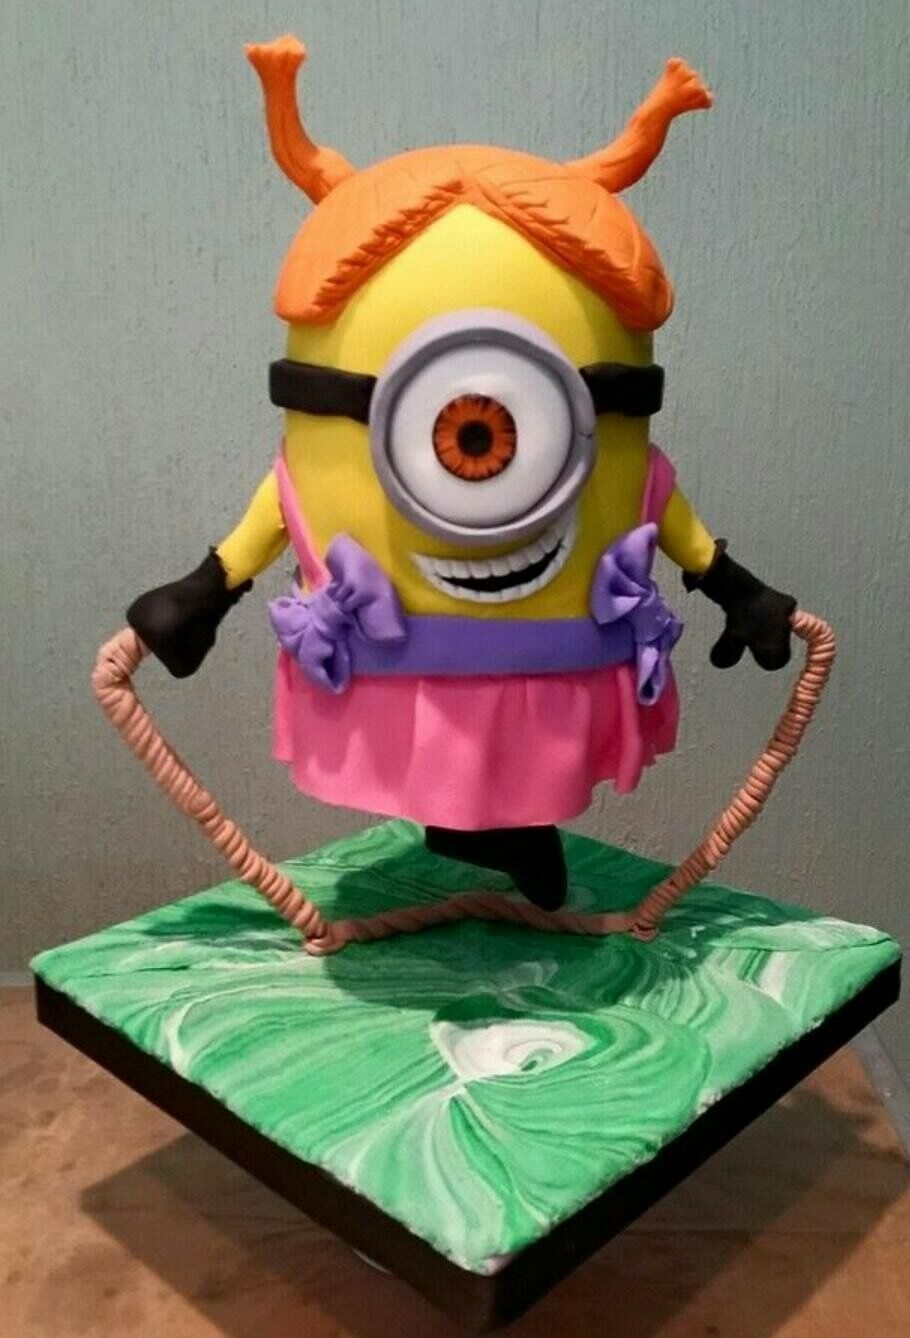 Gravity Defying fondant minion